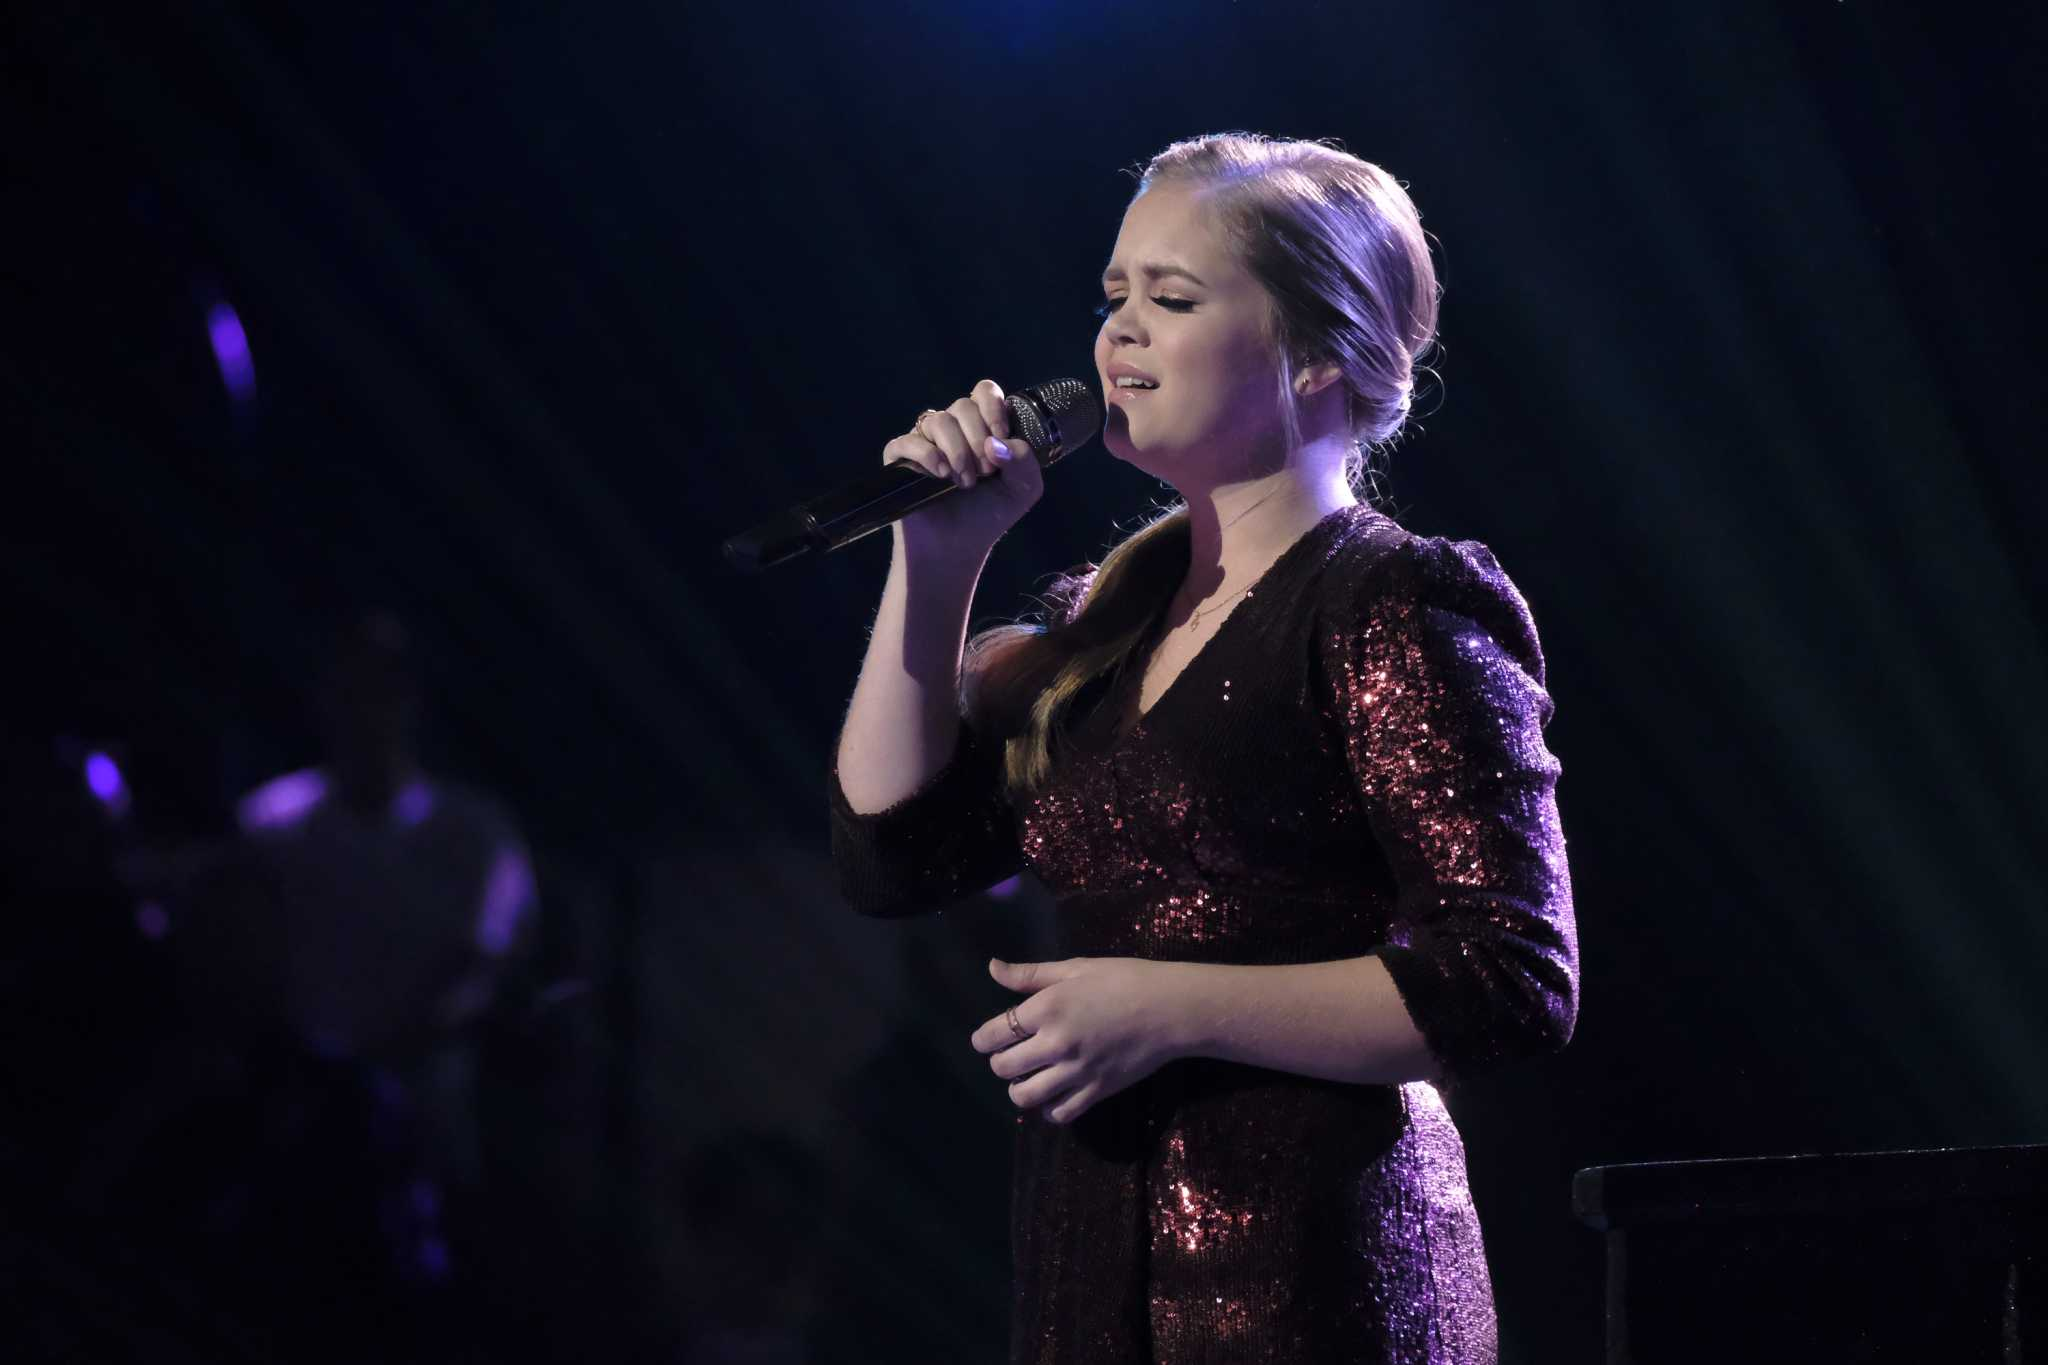 Sarah Grace covers Harry Styles, Aretha Franklin on 'Voice' semifinals